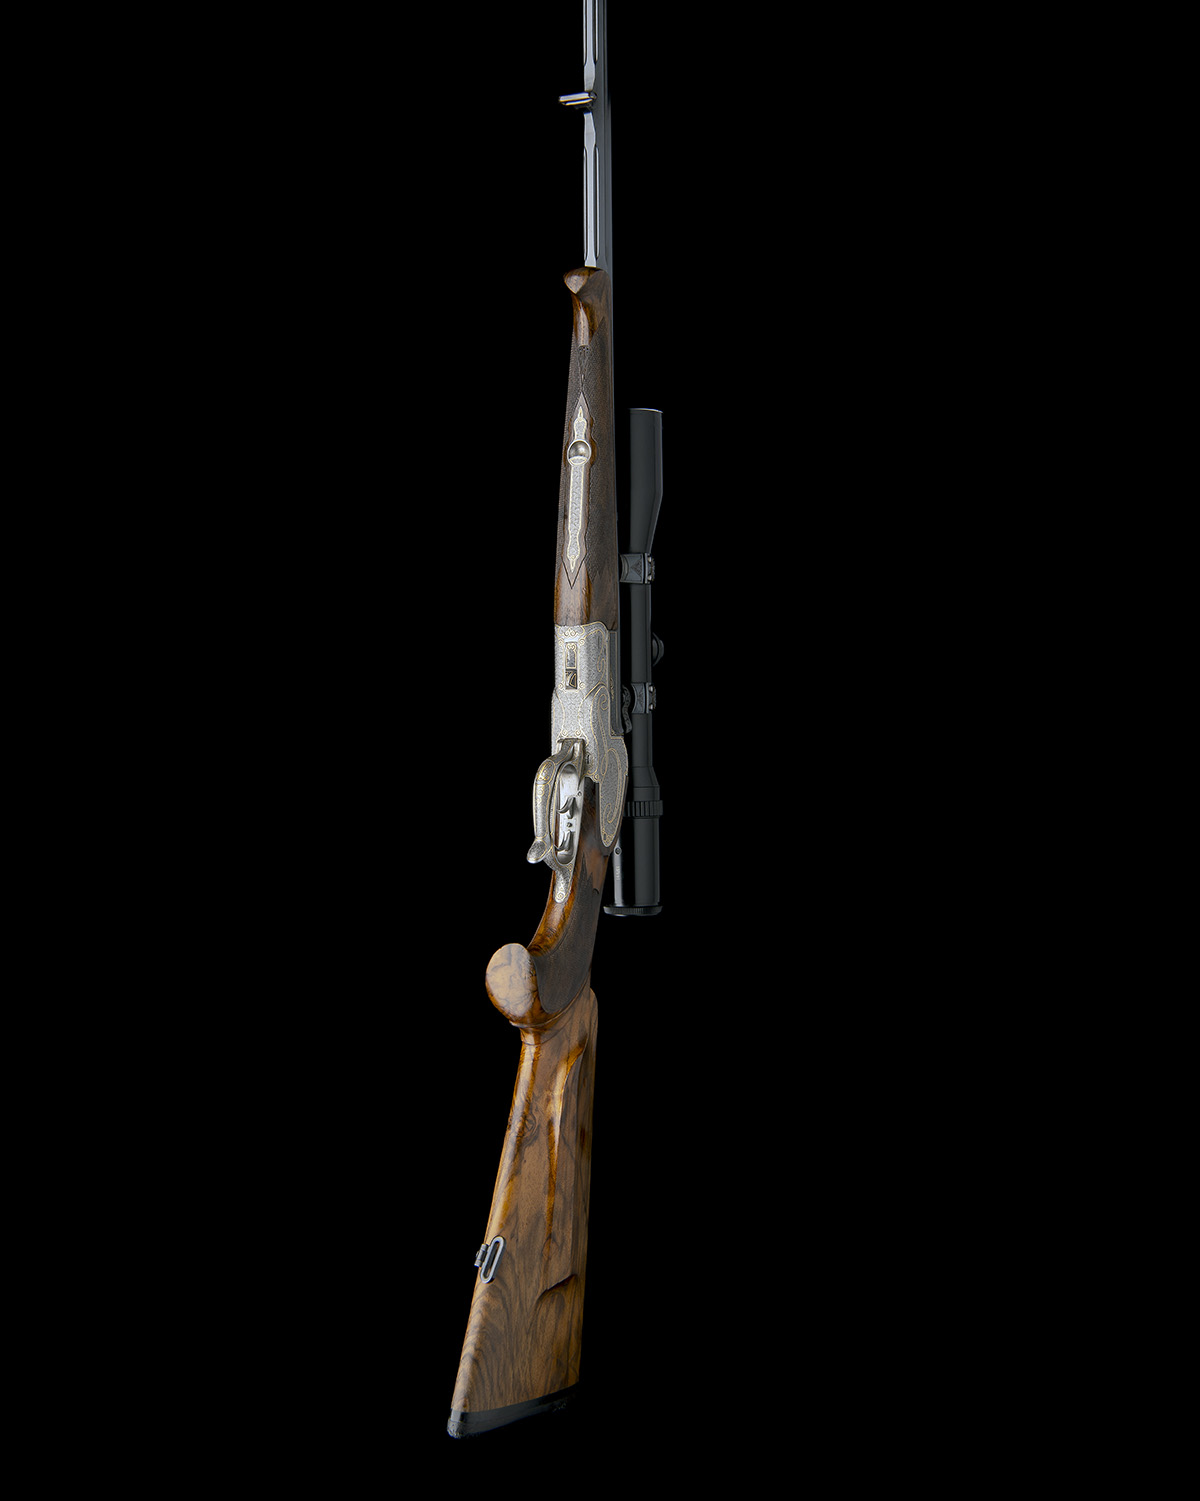 H. SCHEIRING A .300 WIN. MAG. JAEGER PATENT SINGLE-BARRELLED SIDEPLATED PUSH-FORWARD UNDERLEVER - Image 7 of 13